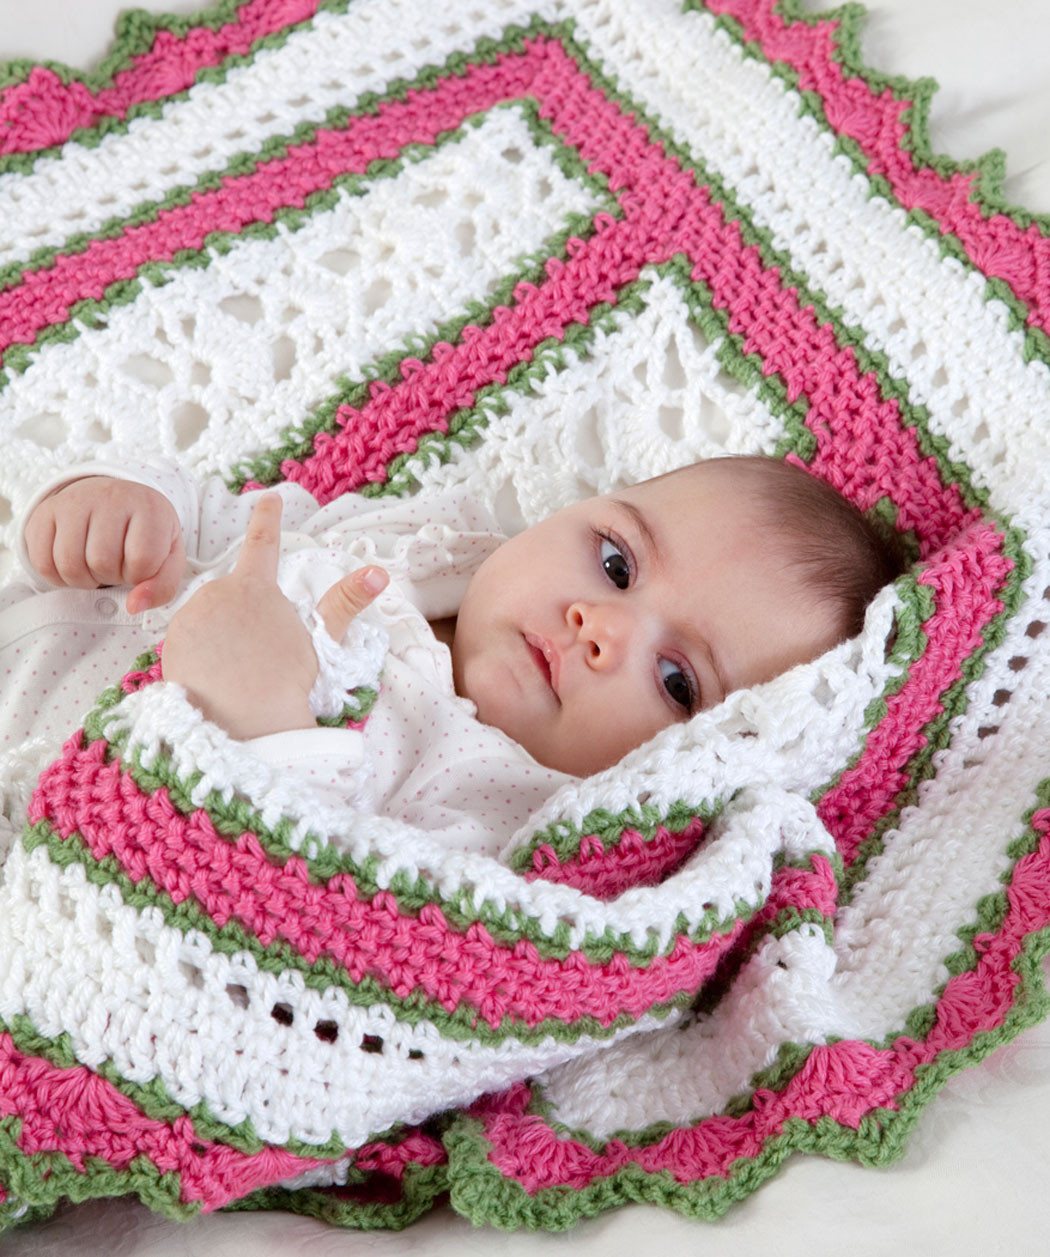 Baby Boy Crochet Blanket Patterns Best Of 10 Beautiful Baby Blanket Free Patterns Of Baby Boy Crochet Blanket Patterns Lovely My Crochet Part 395